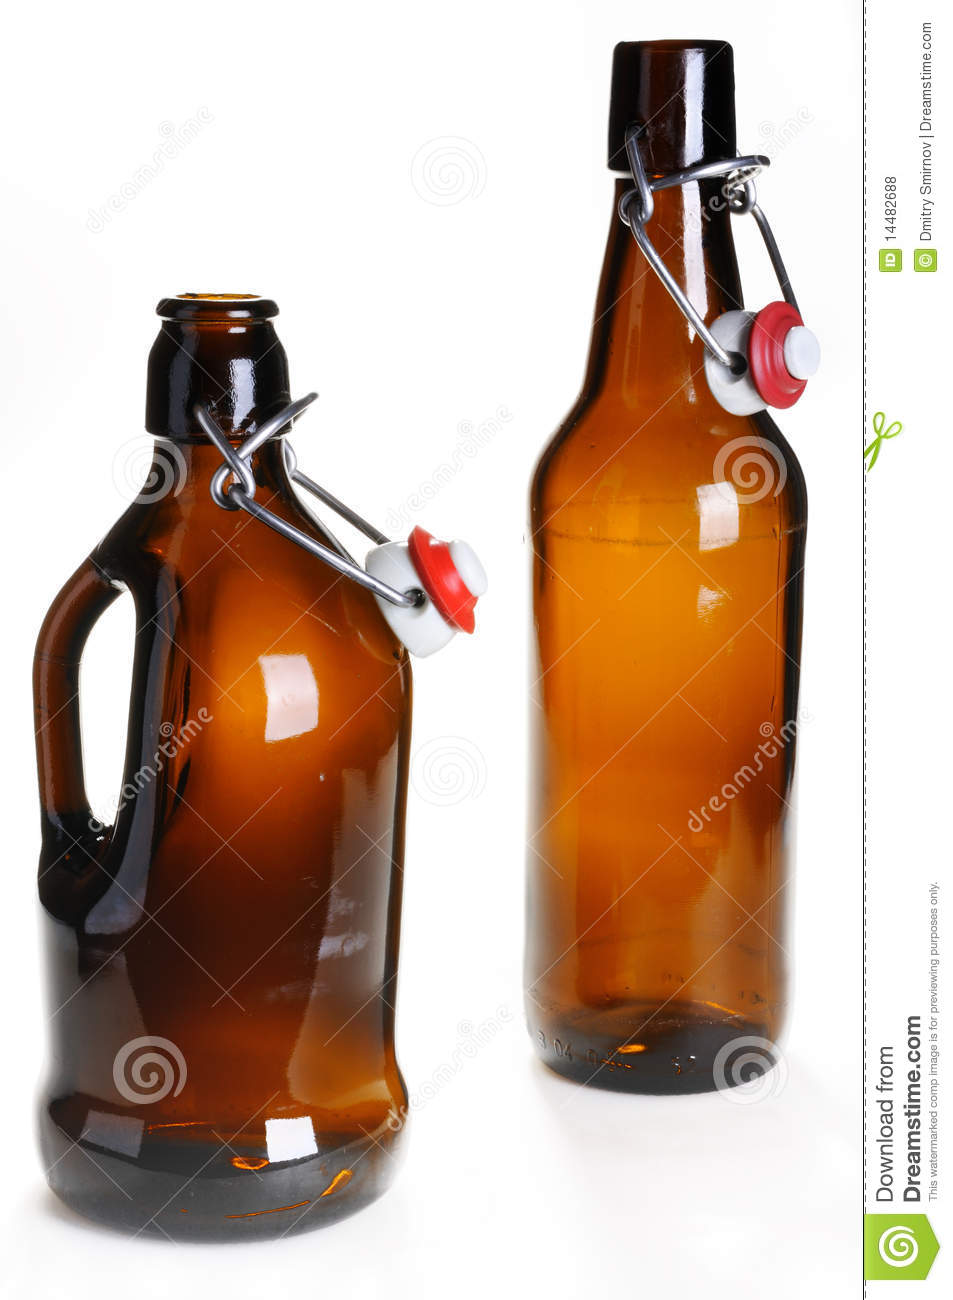 Old Beer Bottles Royalty Free Stock Photos Image 14482688